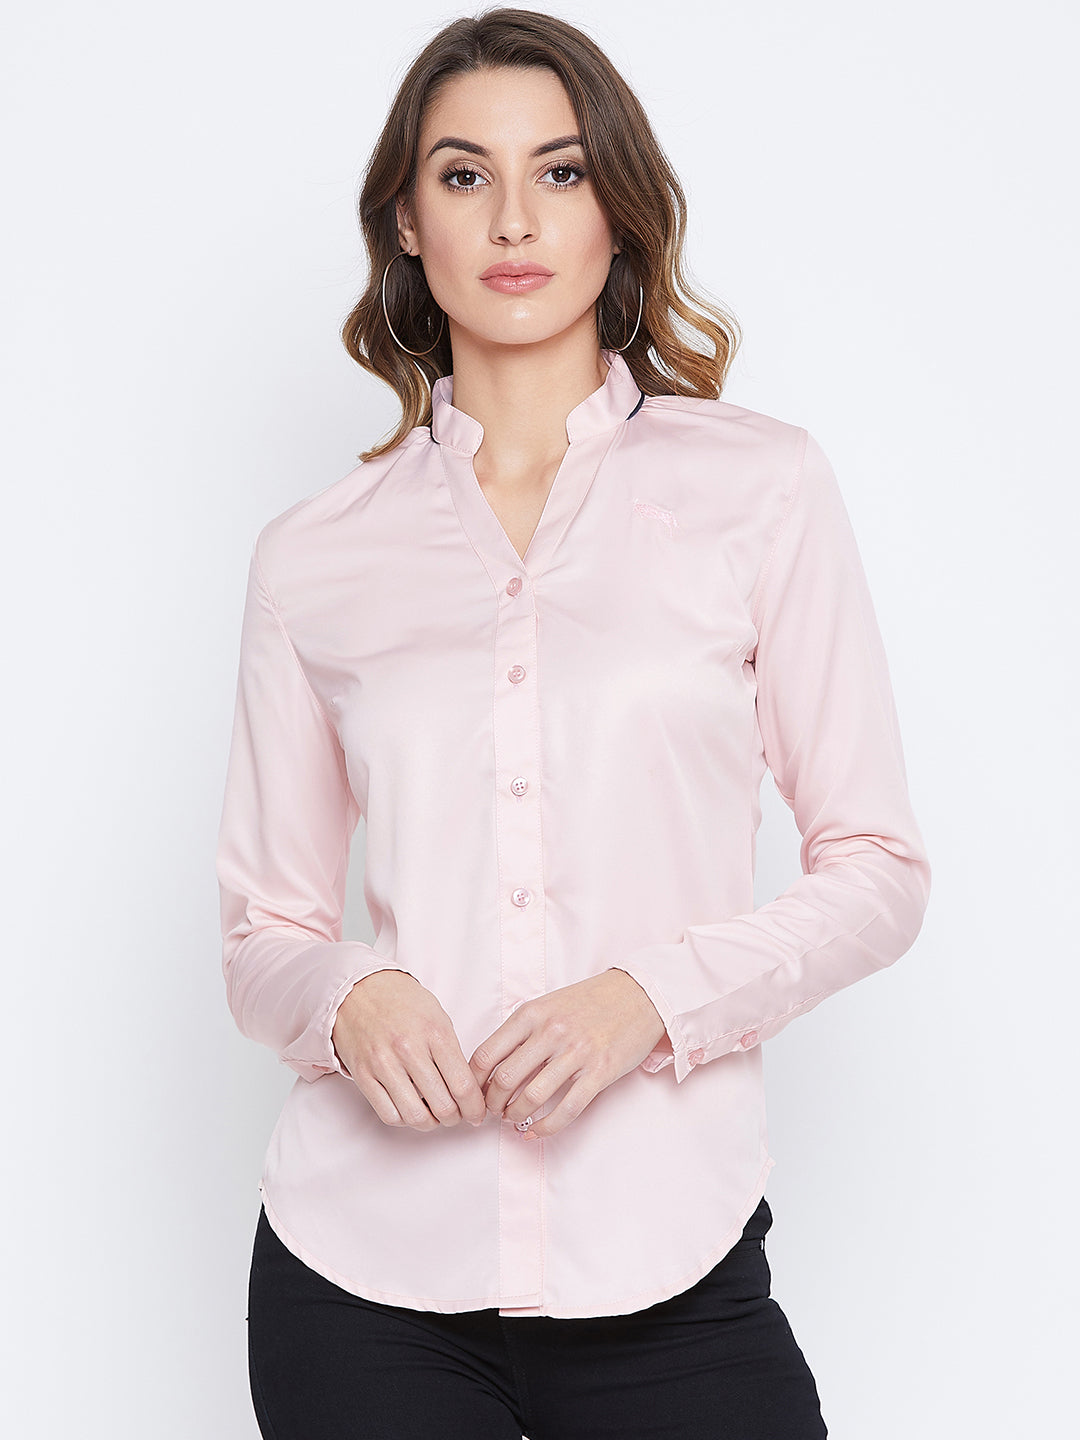 JUMP USA Women Pink Solid Casual Shirts